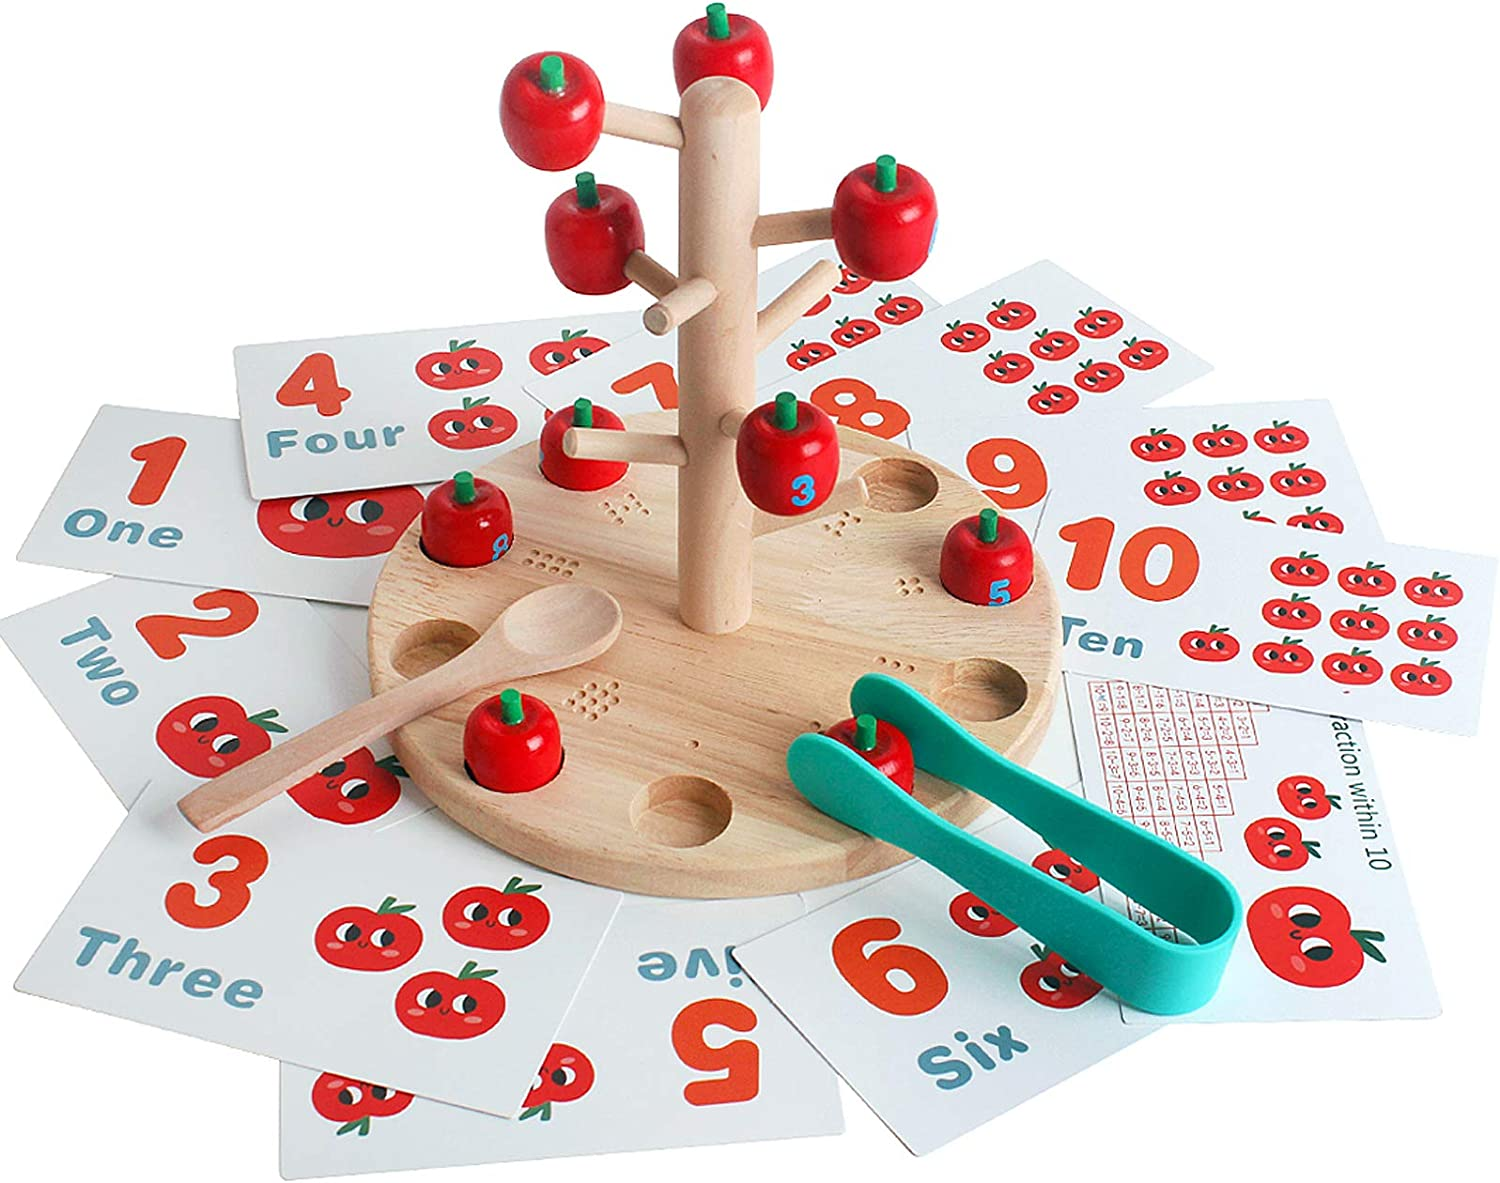 Wooden Multifunctional Apple Picking Tree Toy Distribution Arithmetic Montessori Preschool Toy Fat Brain Game Kit for Kids Over 3 Years Old Fun Early Education Fine Motor Skill Grasping Developing